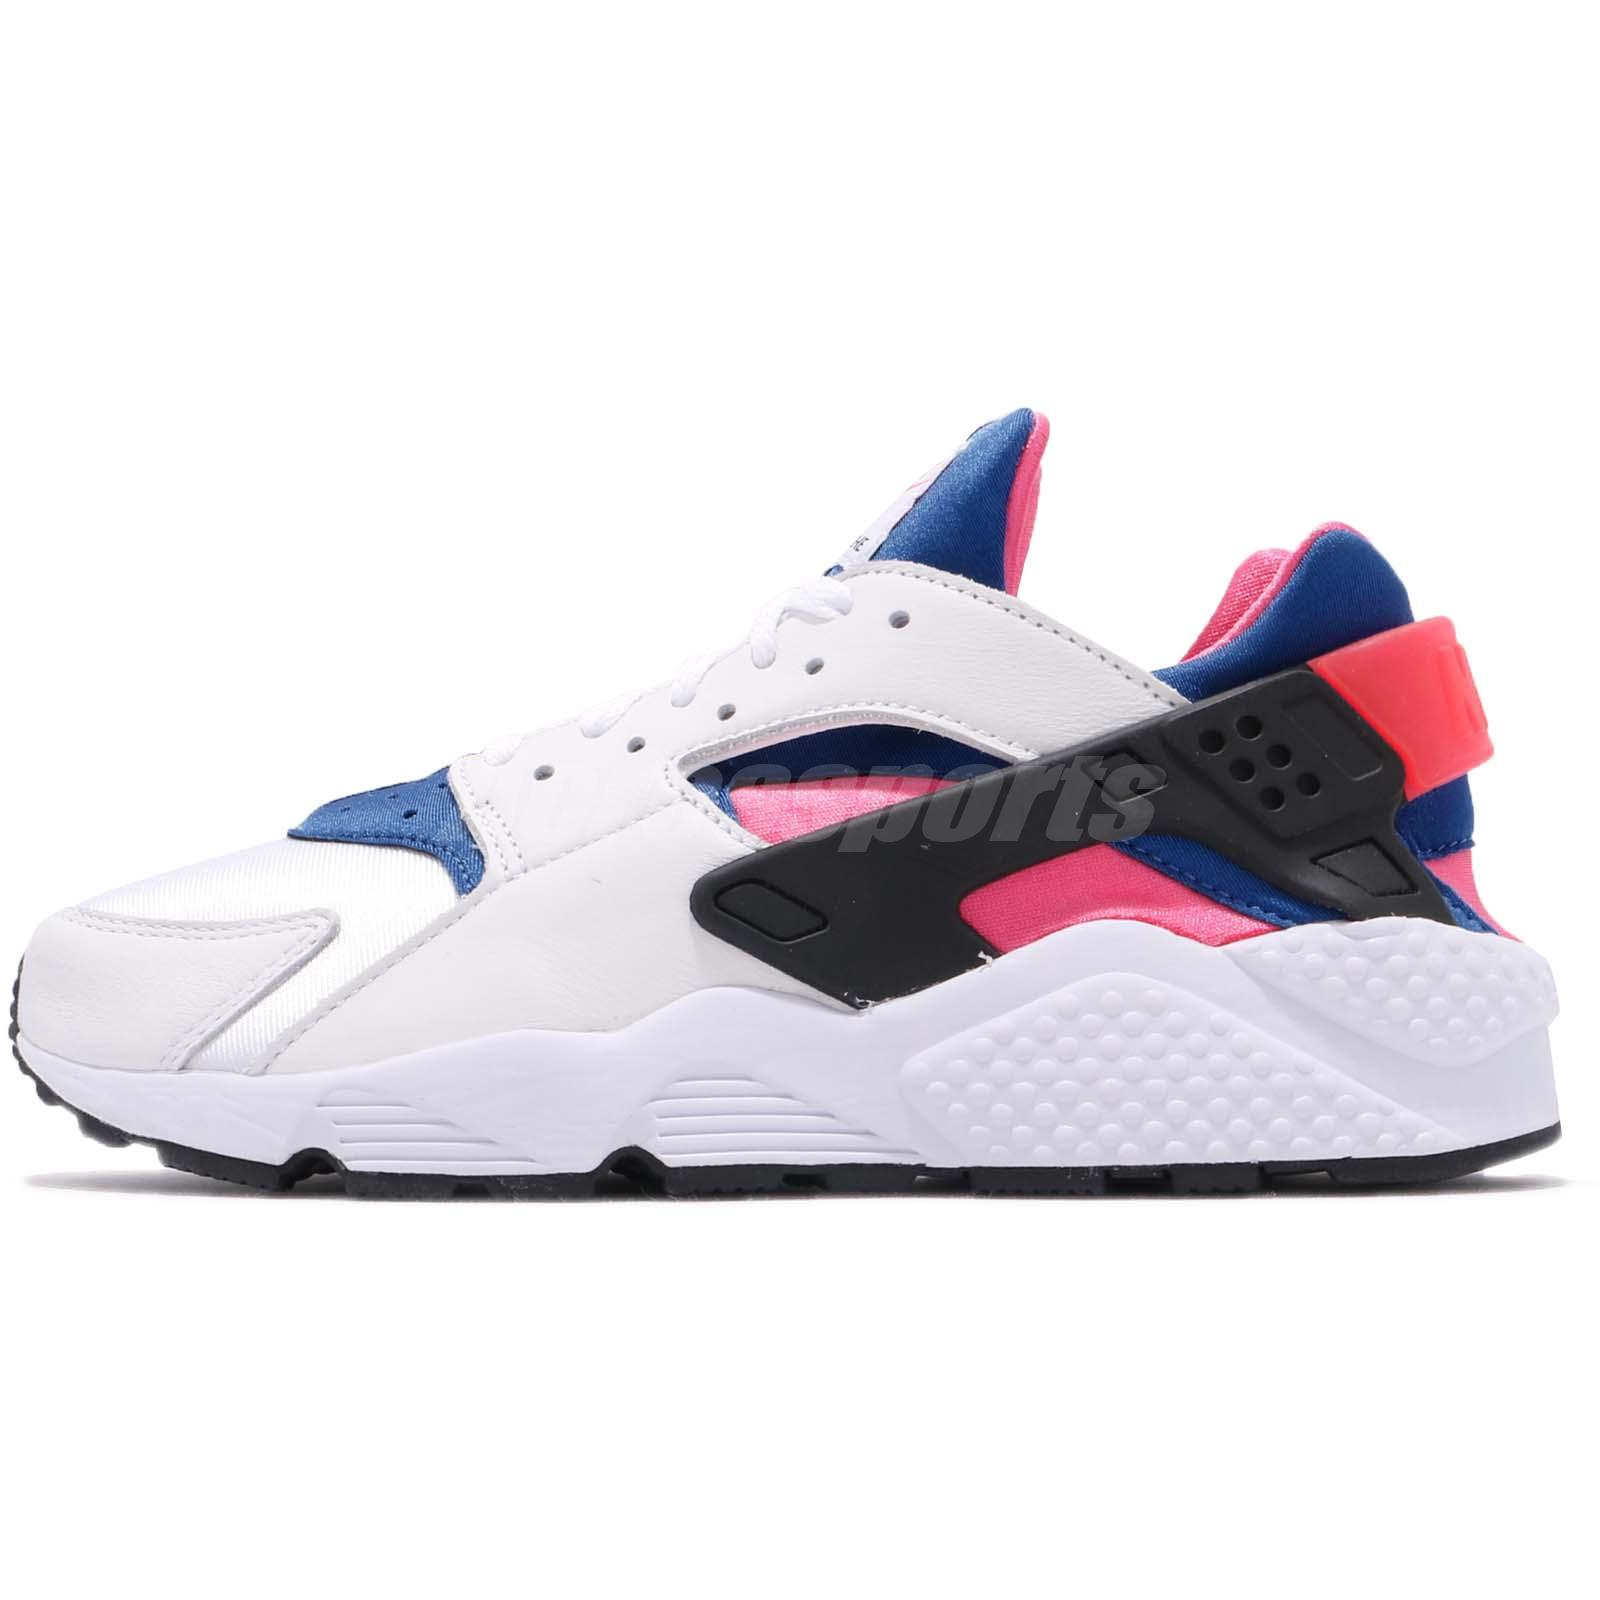 eea5e7000d323 Nike Air Huarache Run 91 QS OG White Blue Pink Men Shoes Sneakers AH8049-100